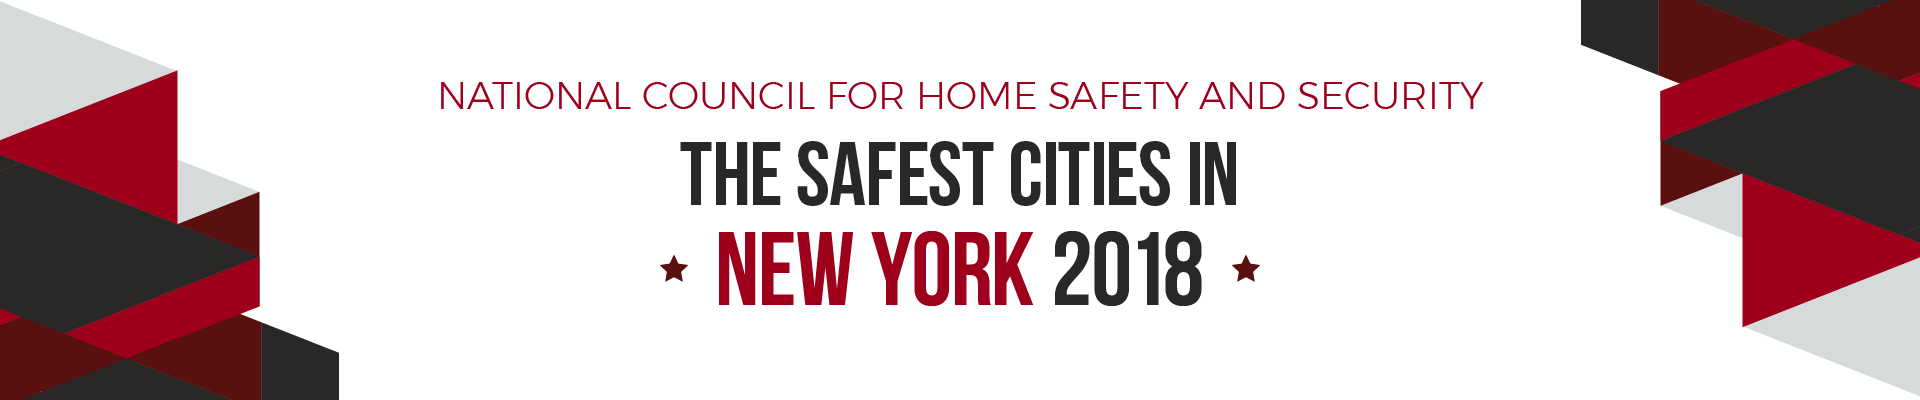 safe cities new york 2018